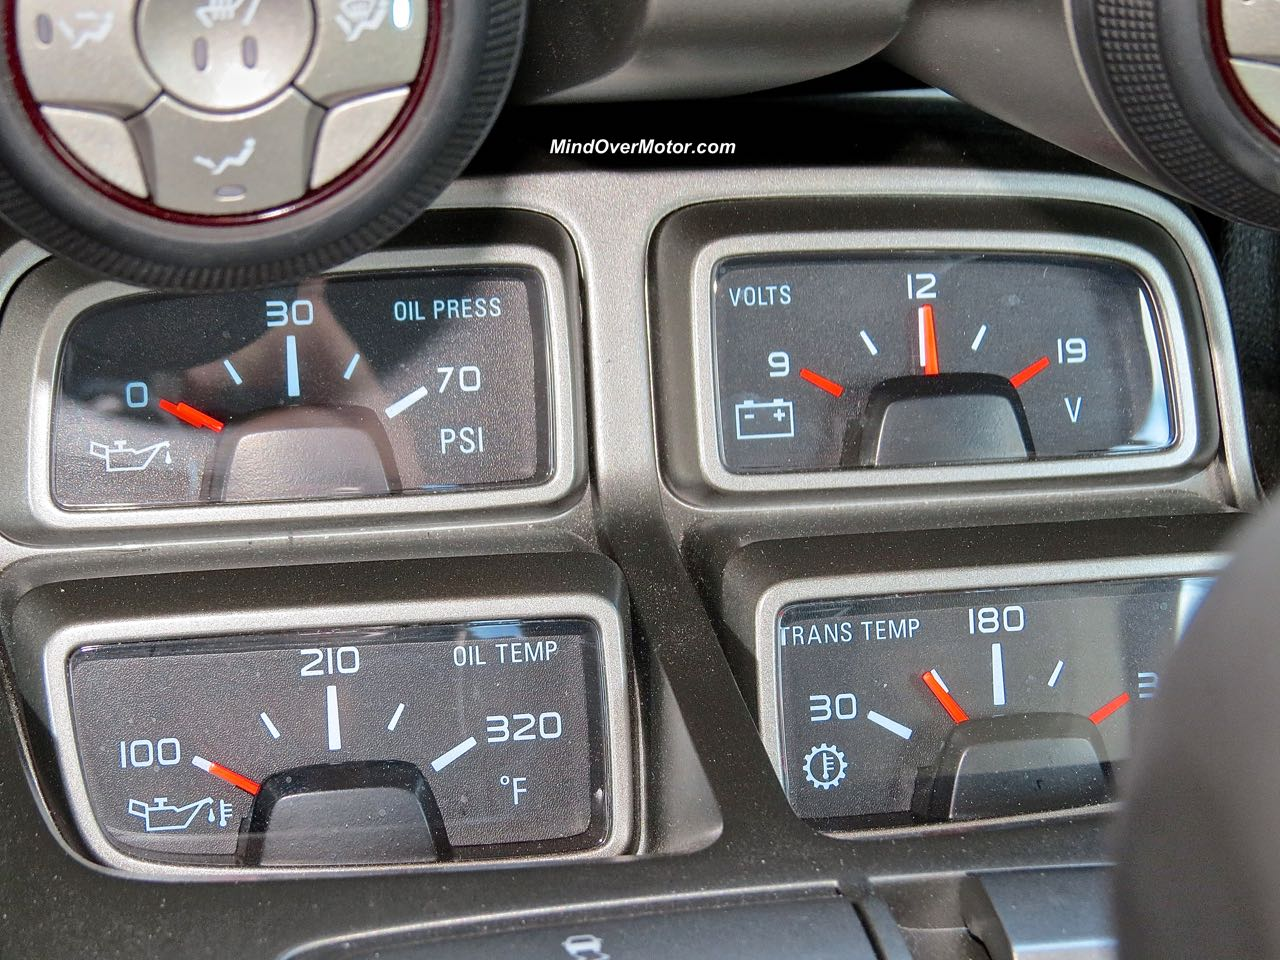 2015 Chevrolet Camaro Convertible Console Gauges